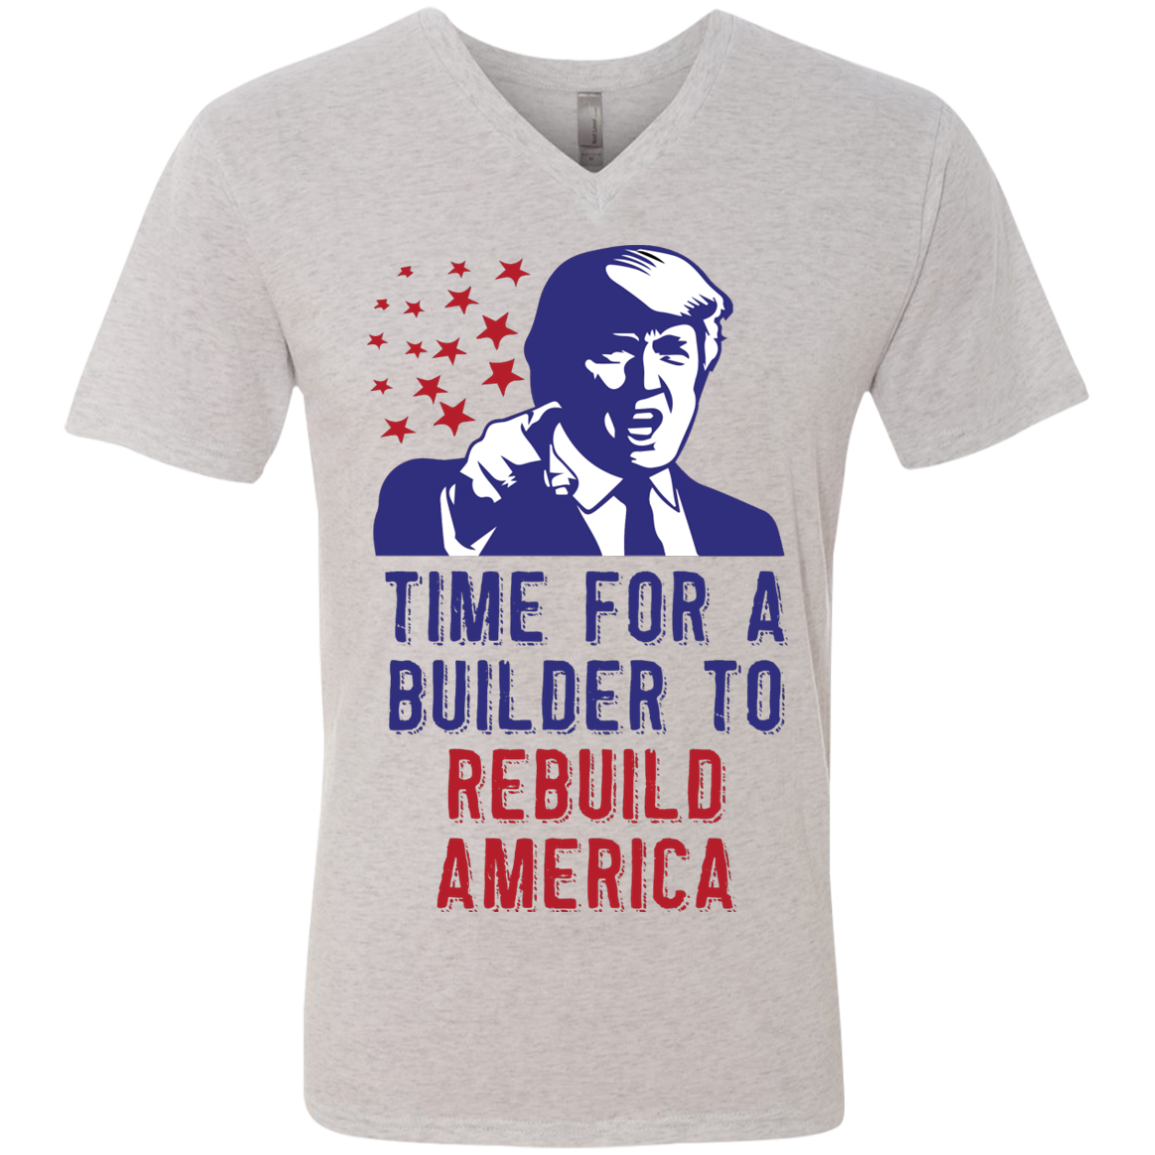 Rebuild America - Men's Triblend V-Neck Tee - Monday Monday